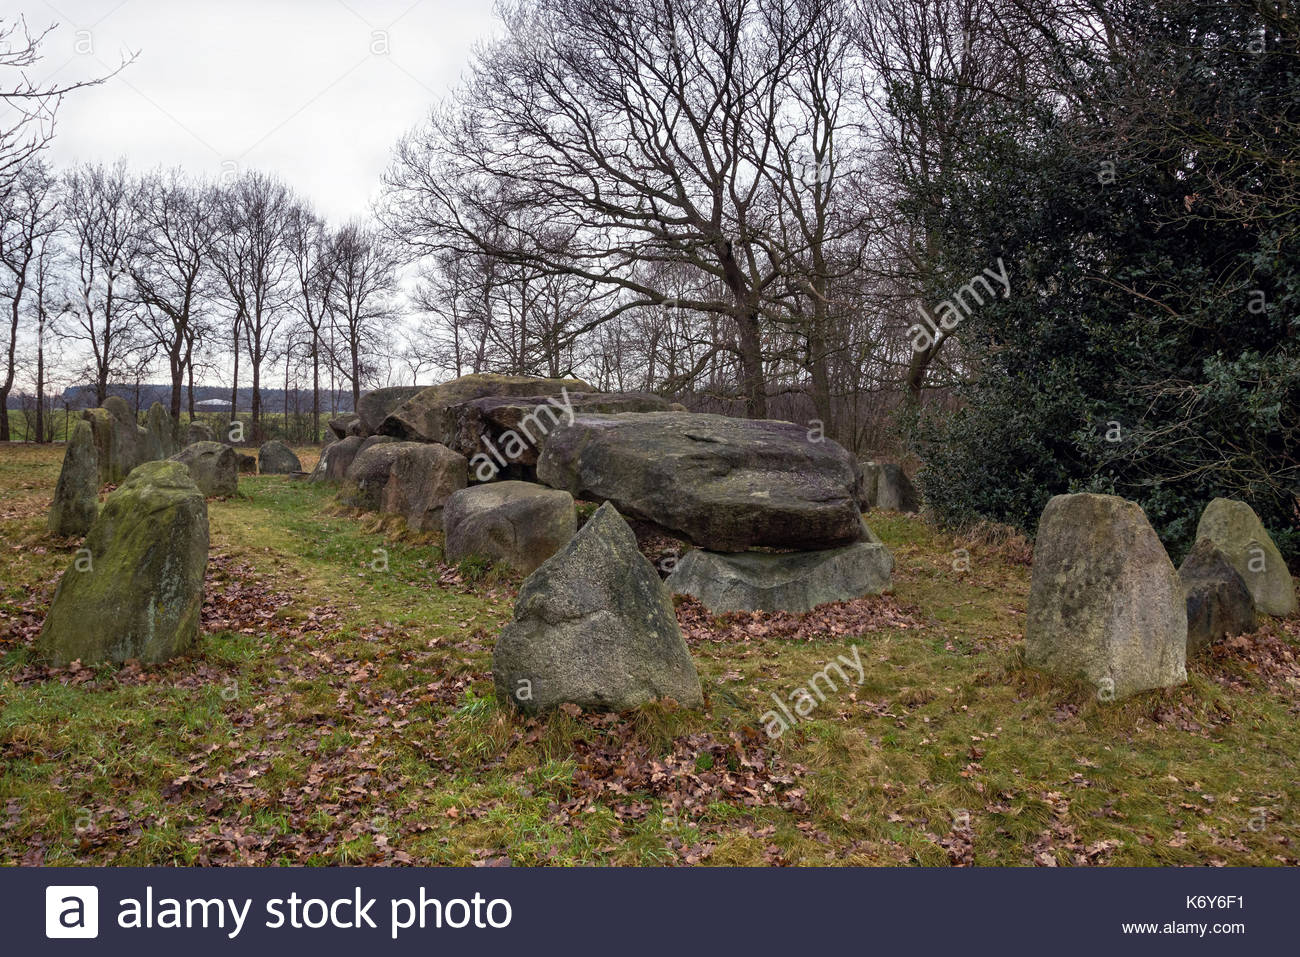 Dolmen D50,an ancient megalithic tomb in the Netherlands on a cloudy day in winter. - Stock Image